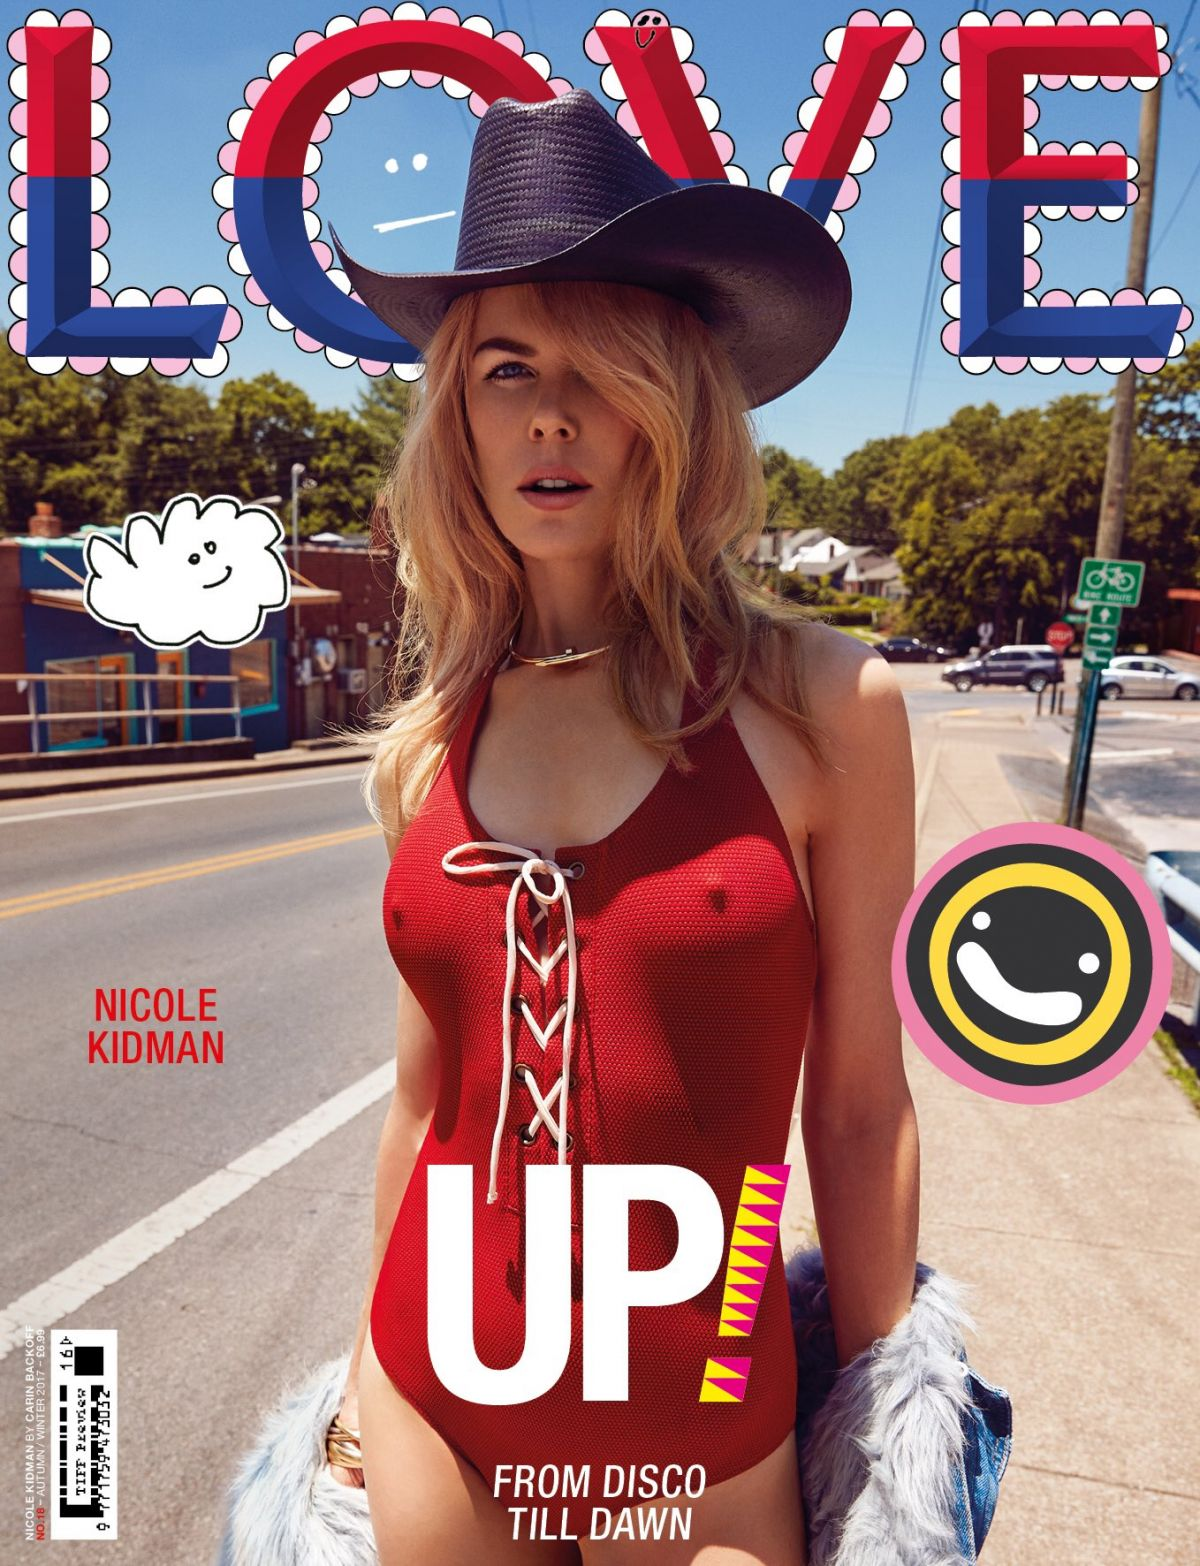 NICOLE KIDMAN for Love Magazine Issue #18